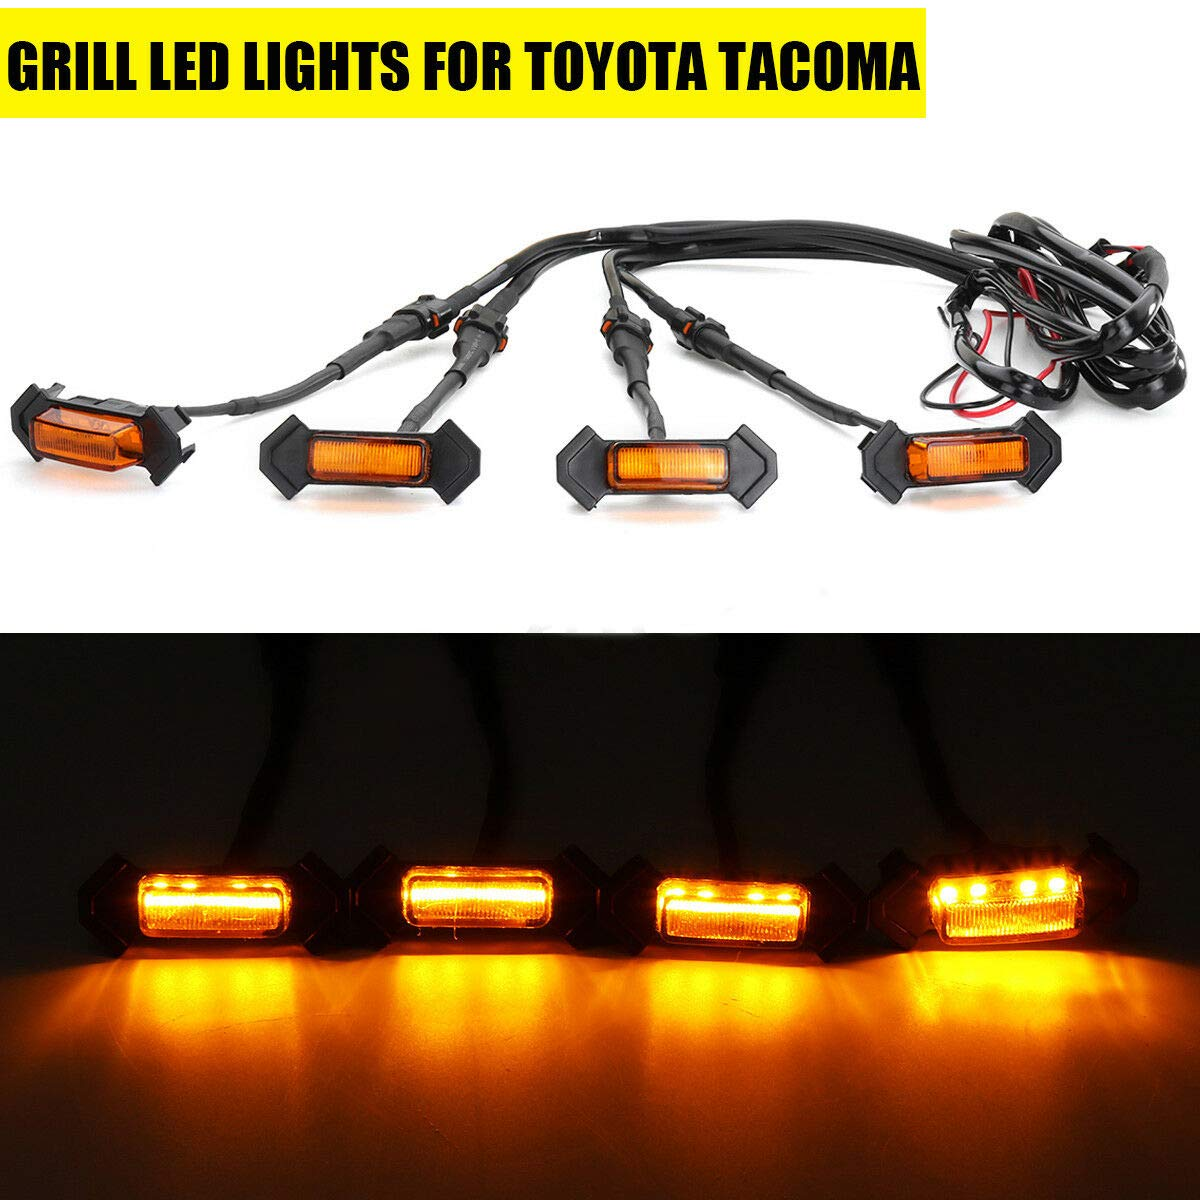 Amber Wisamic 4PCS Front Bumper Hood Grille LED Lights for Aftermarket 2016-2018 Toyota Tacoma TRD PRO Grill